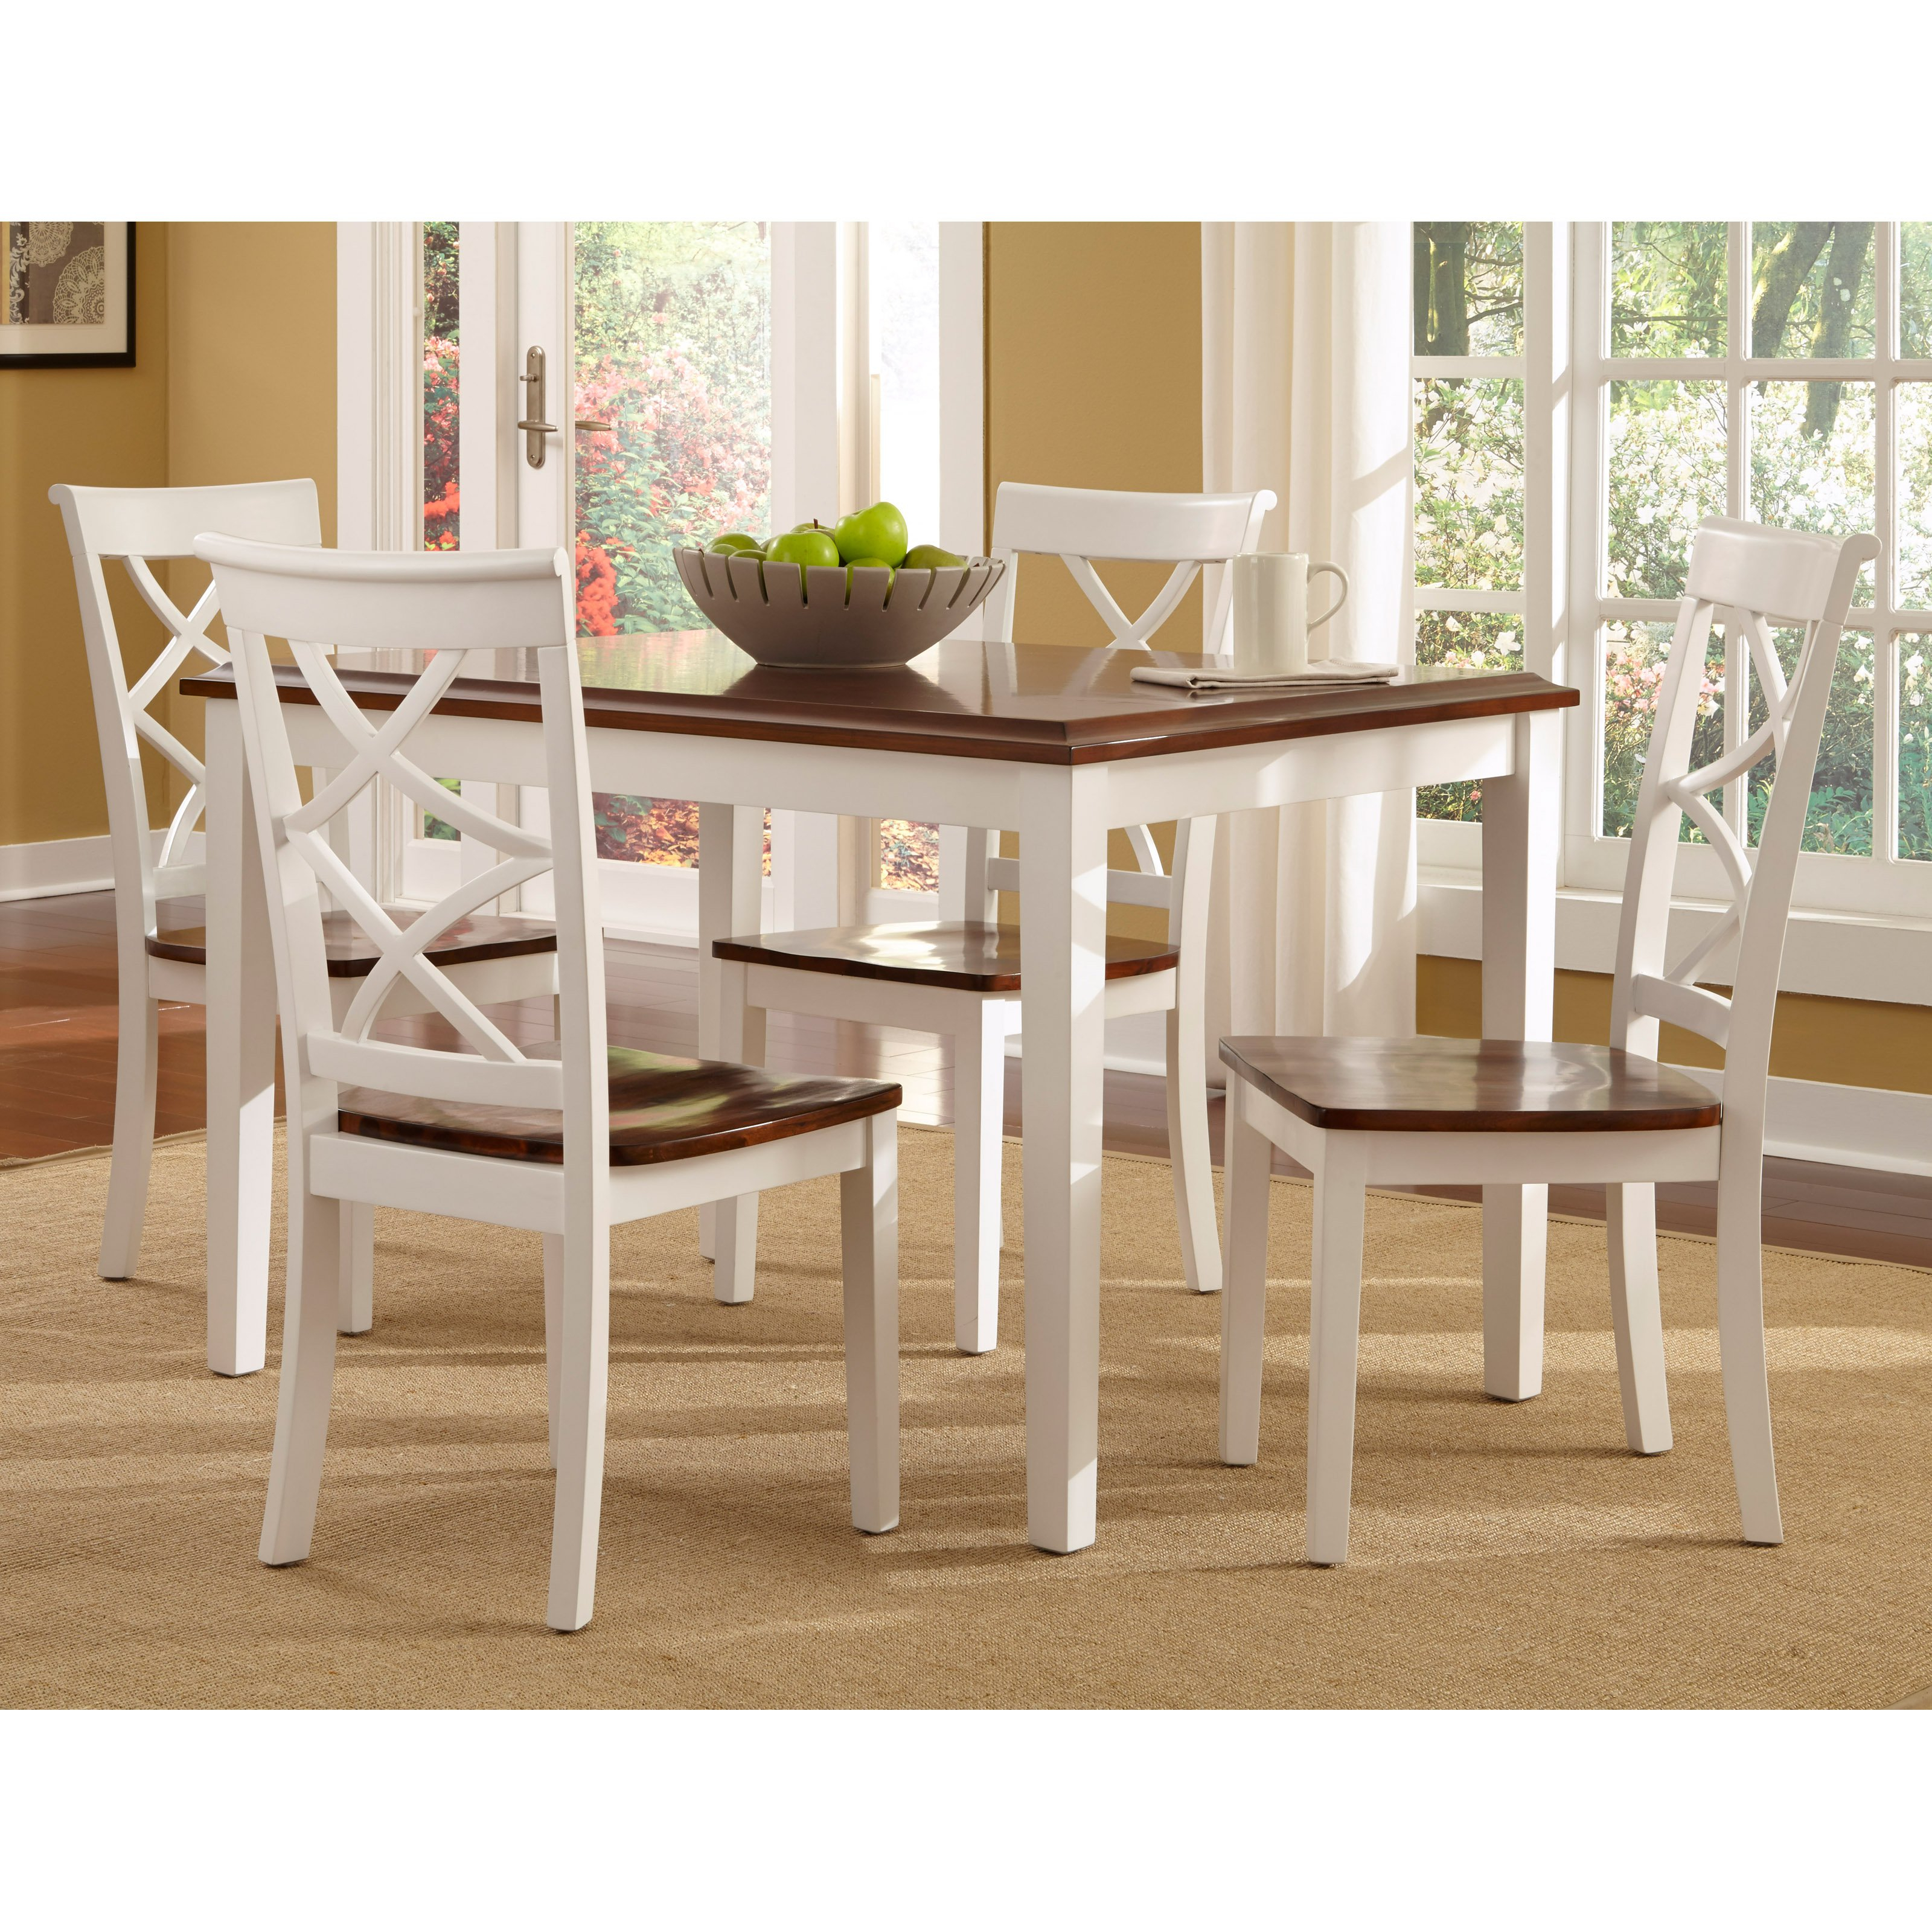 Rossiter 3 Piece Dining Sets Inside Widely Used Metropolitan 3 Piece Dining Set, Multiple Finishes – Walmart (#12 of 20)